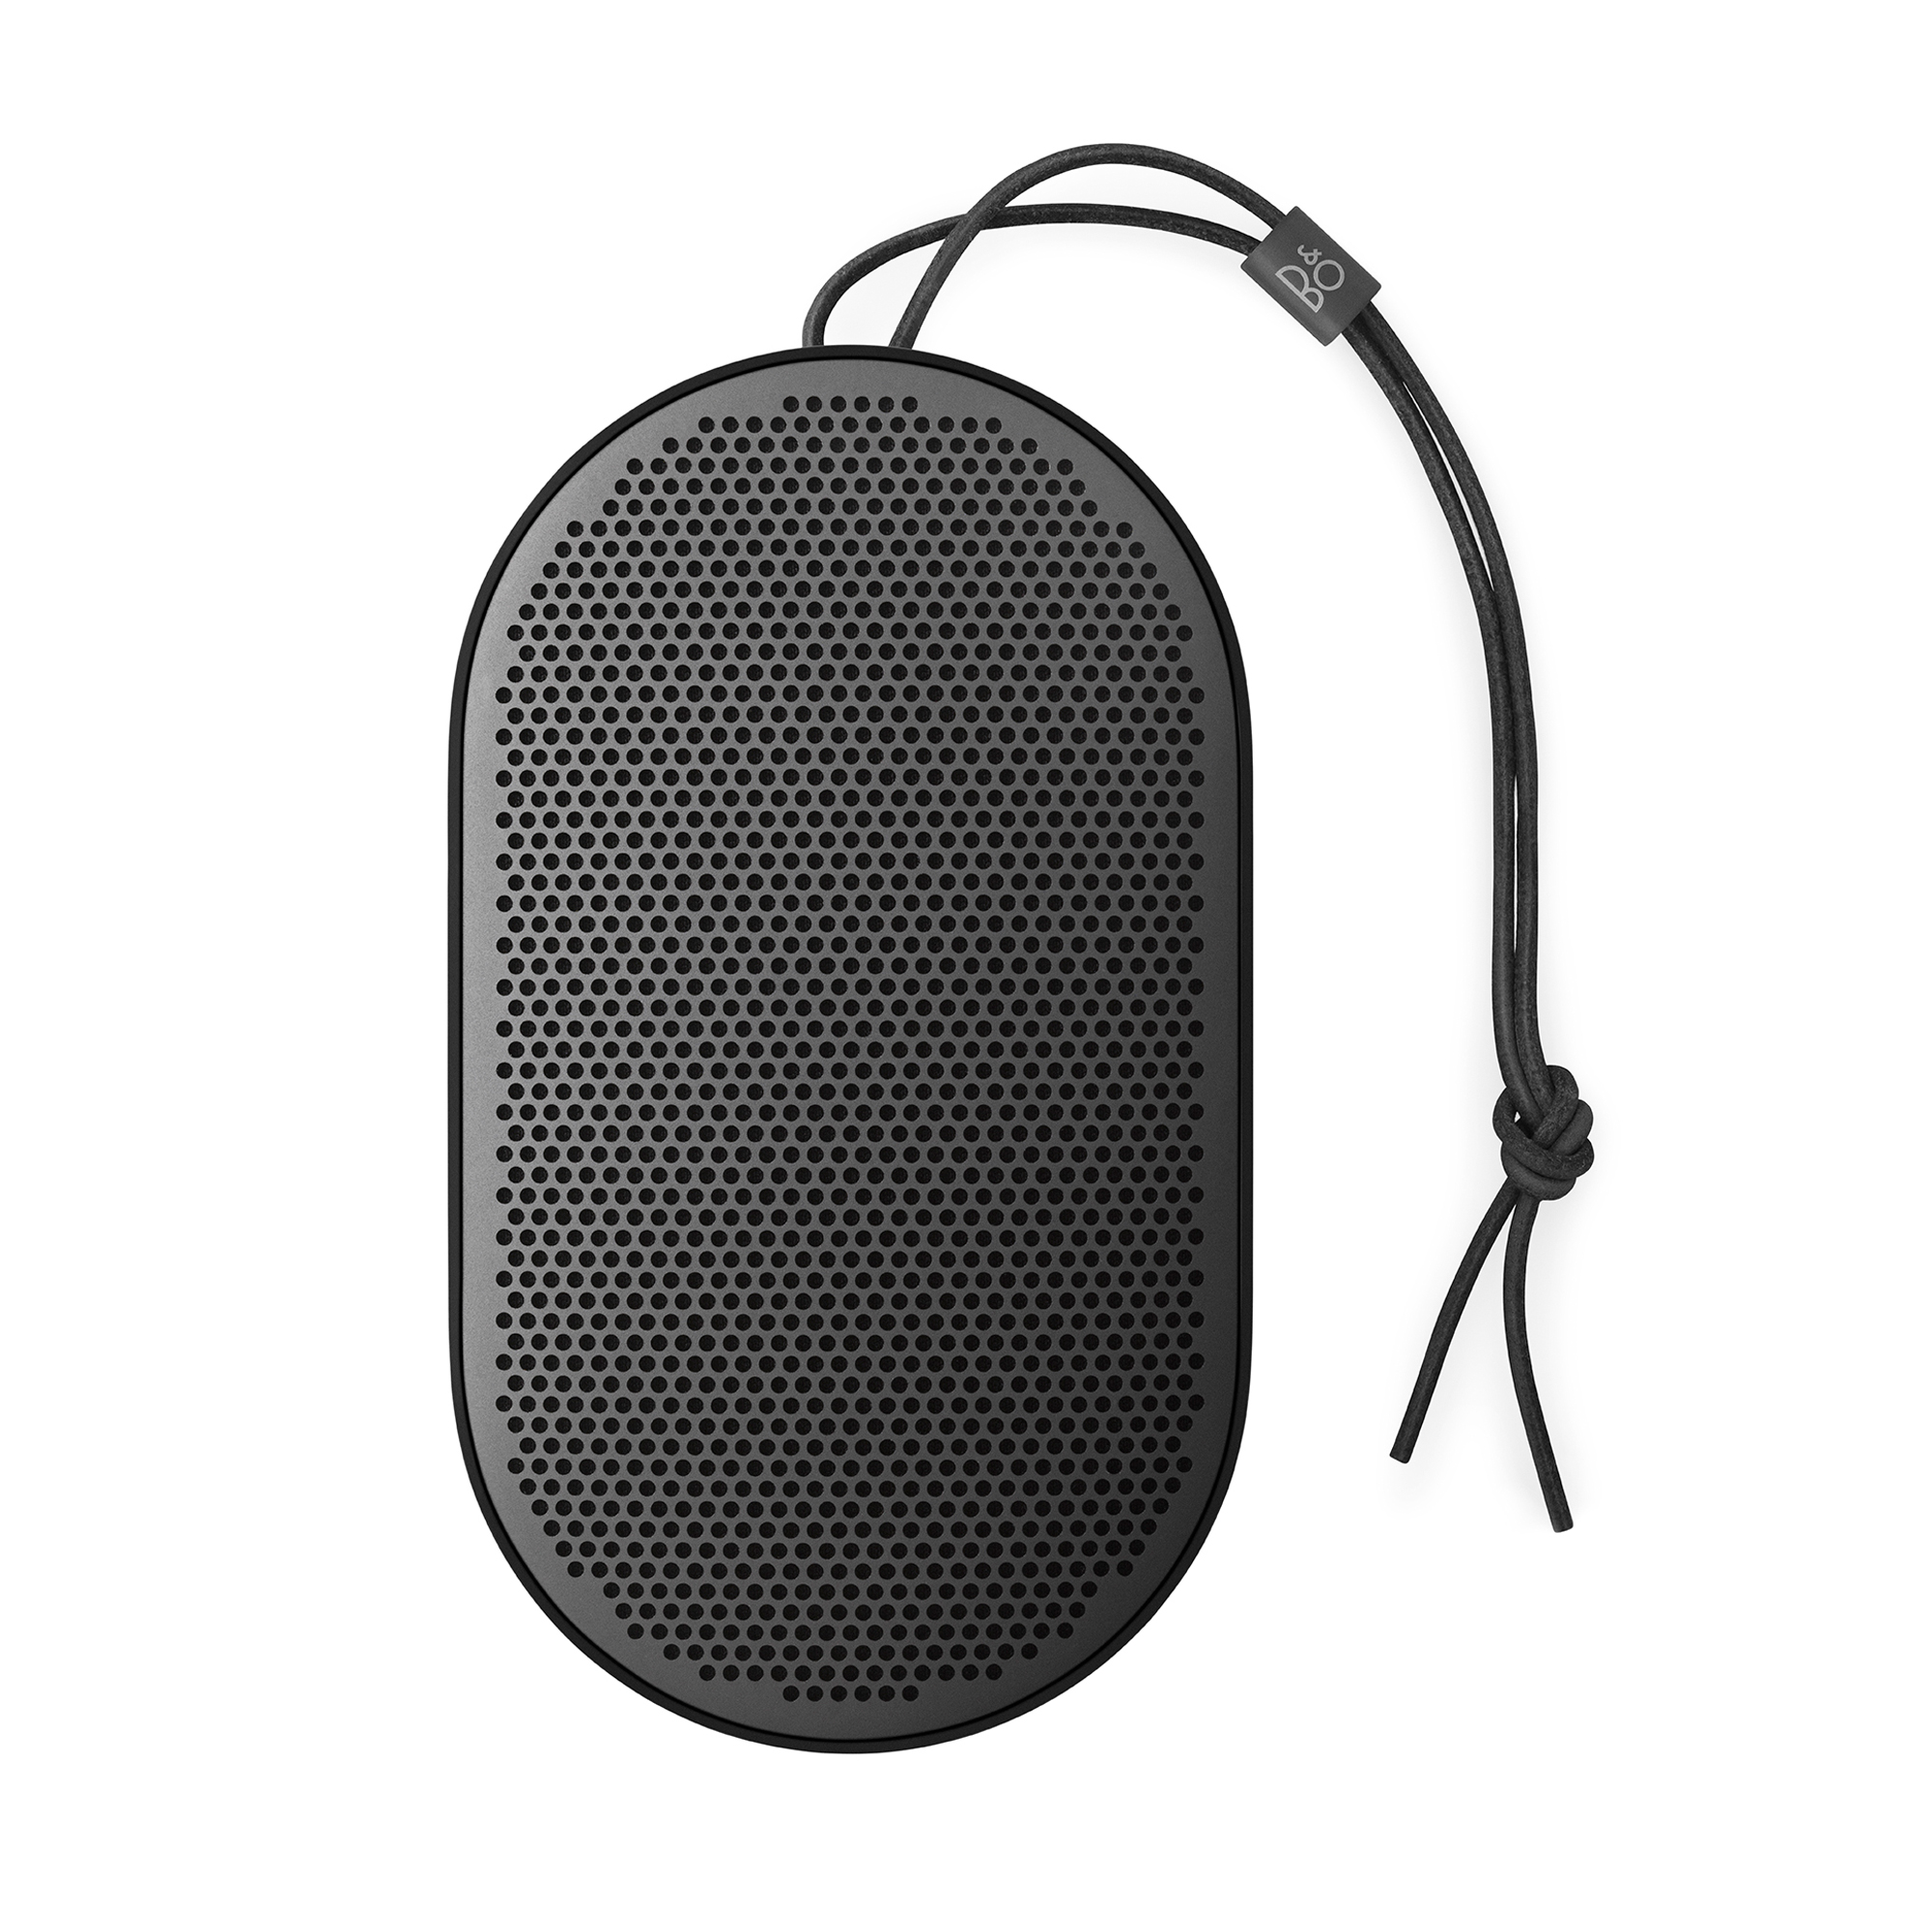 B&O Play รุ่น BeoPlay P2 Black